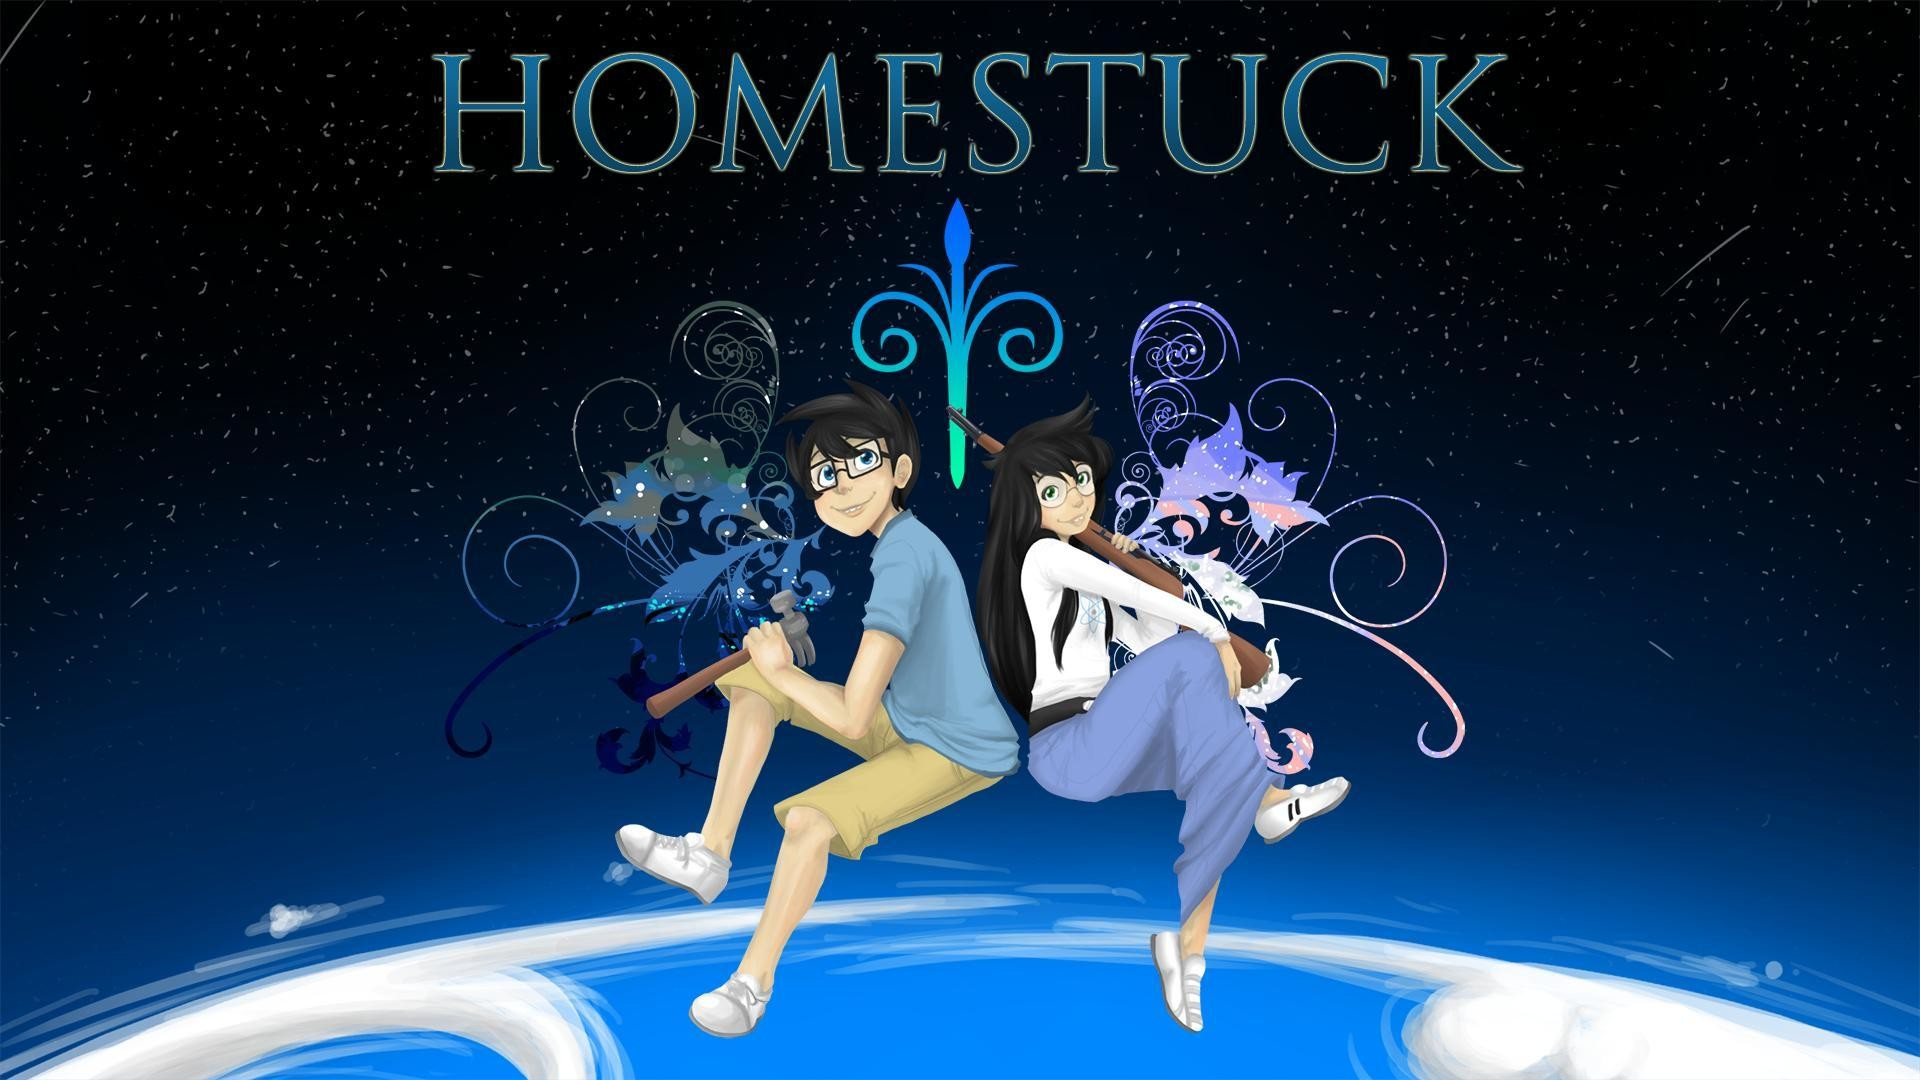 Res: 1920x1080, Pin Homestuck Wallpapers Desktop Page 3 on Pinterest